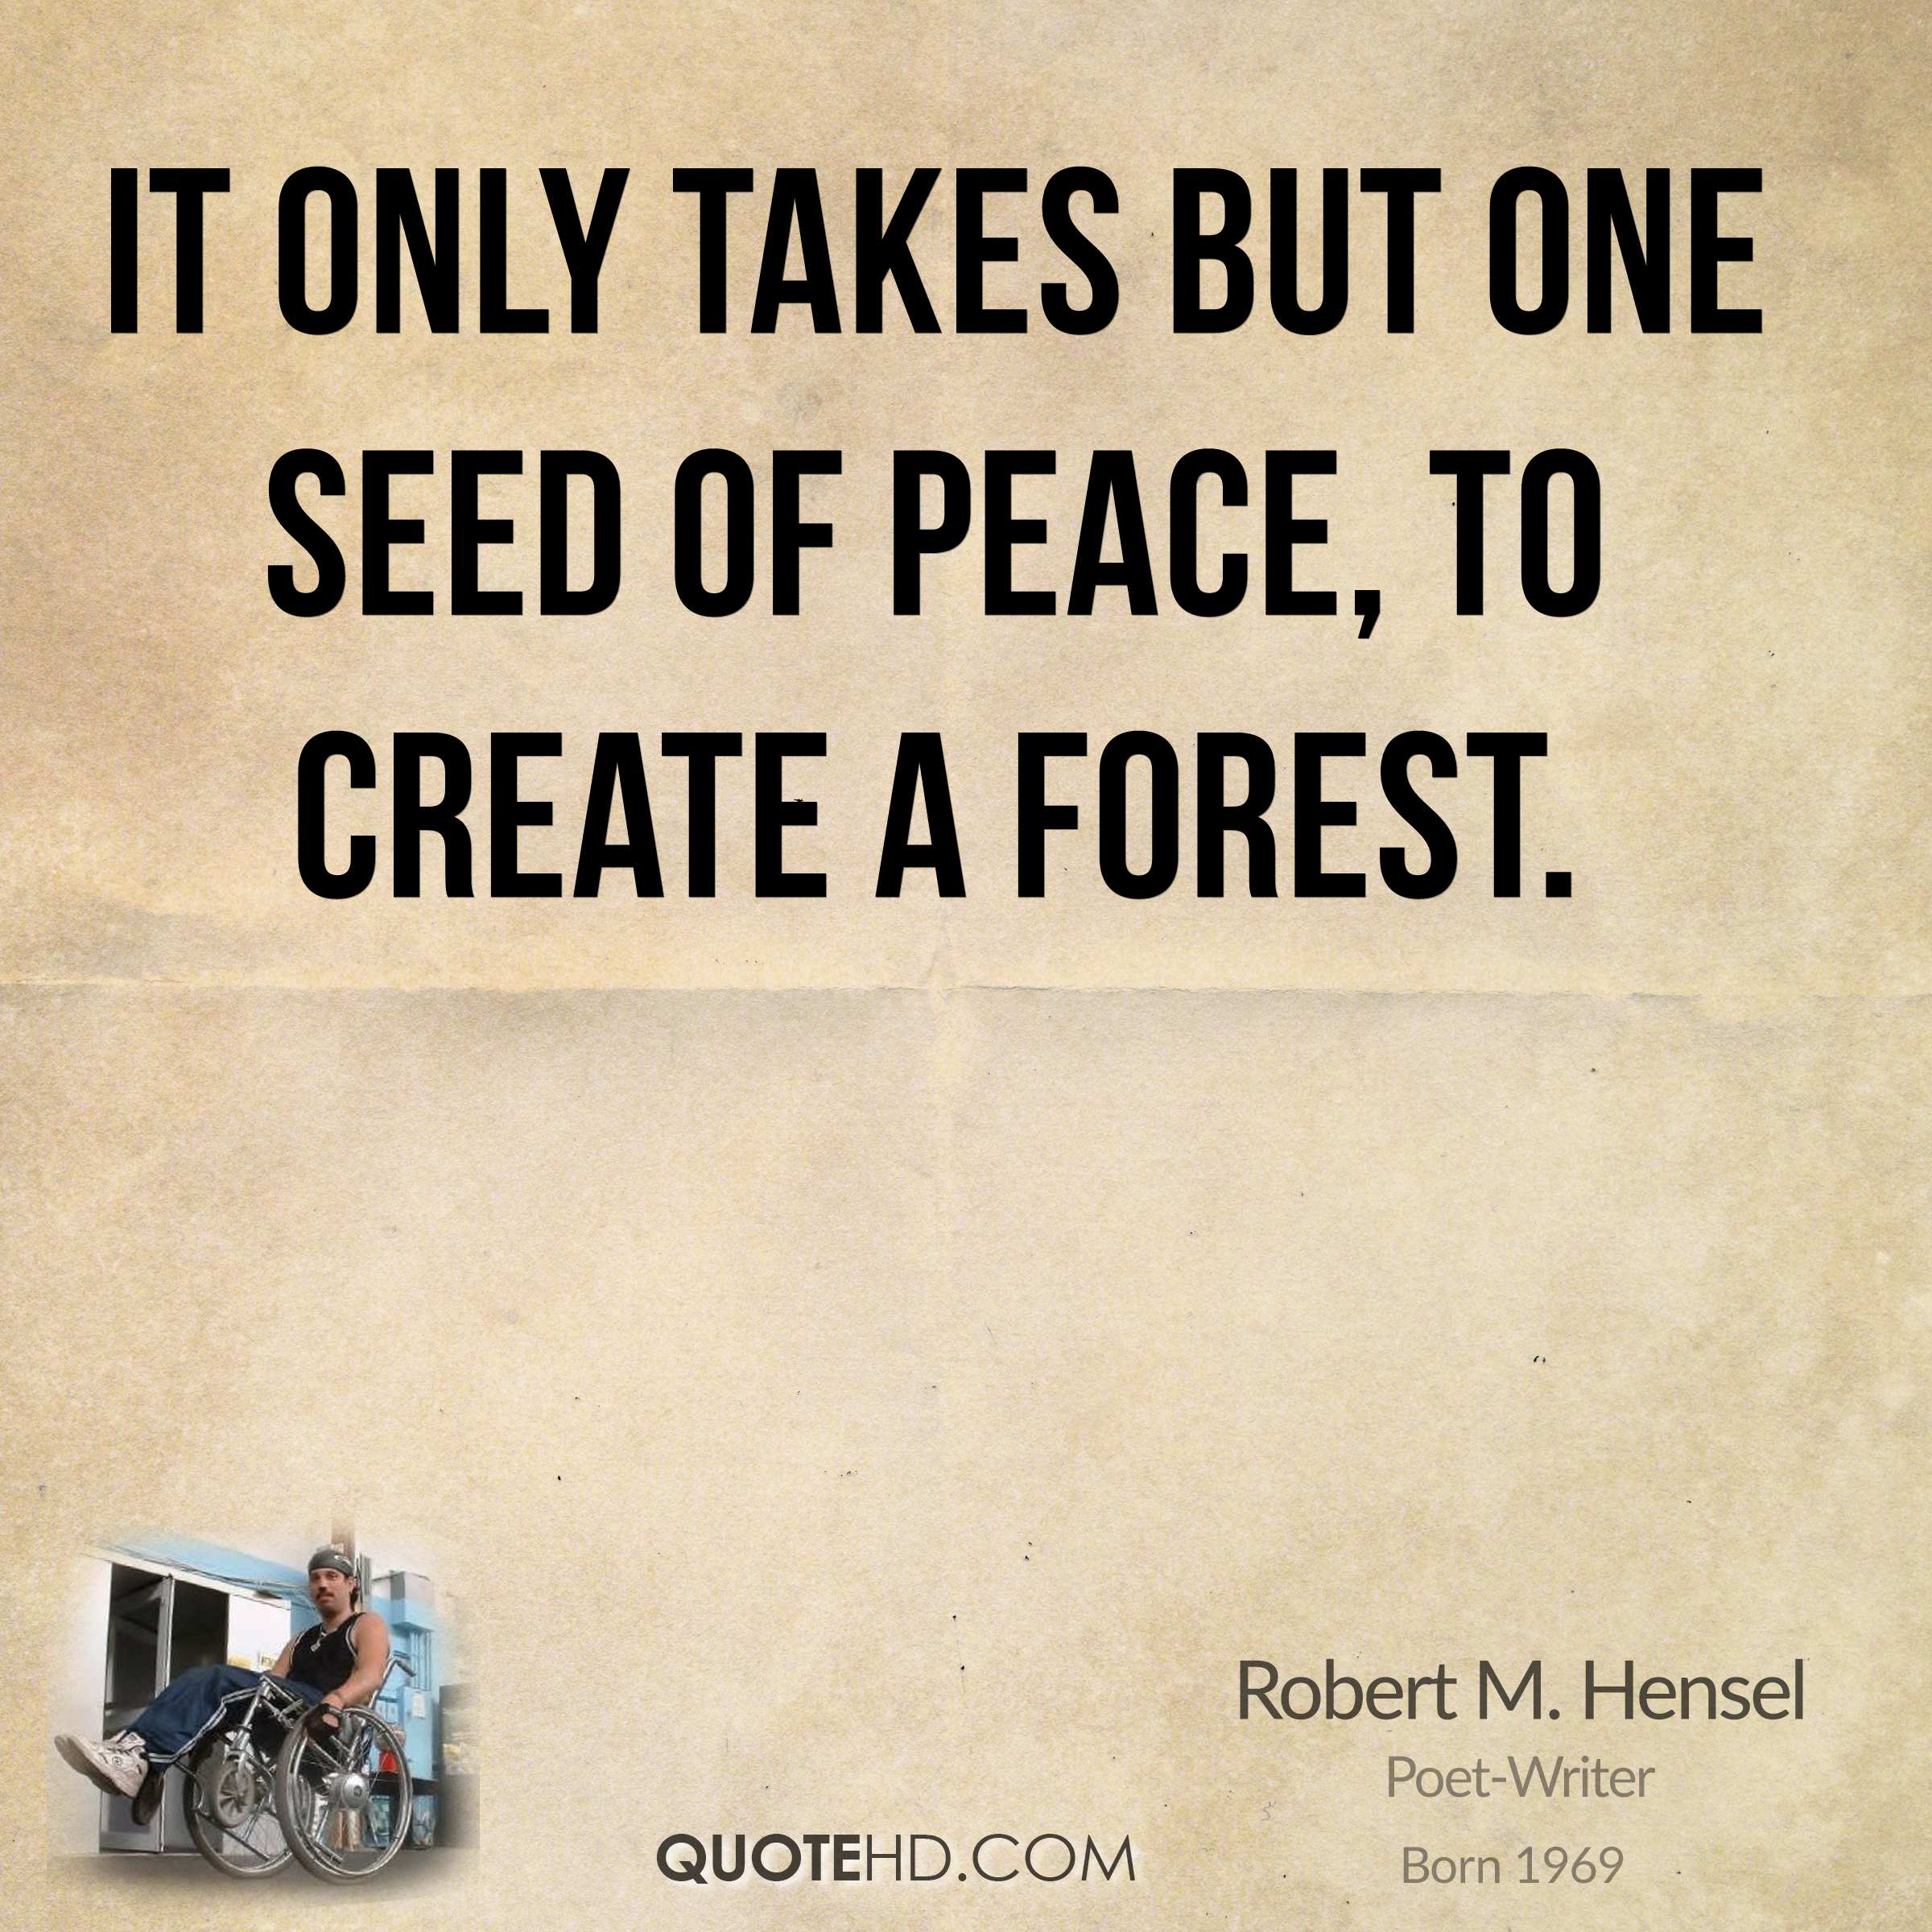 It only takes but one seed of peace, to create a forest.